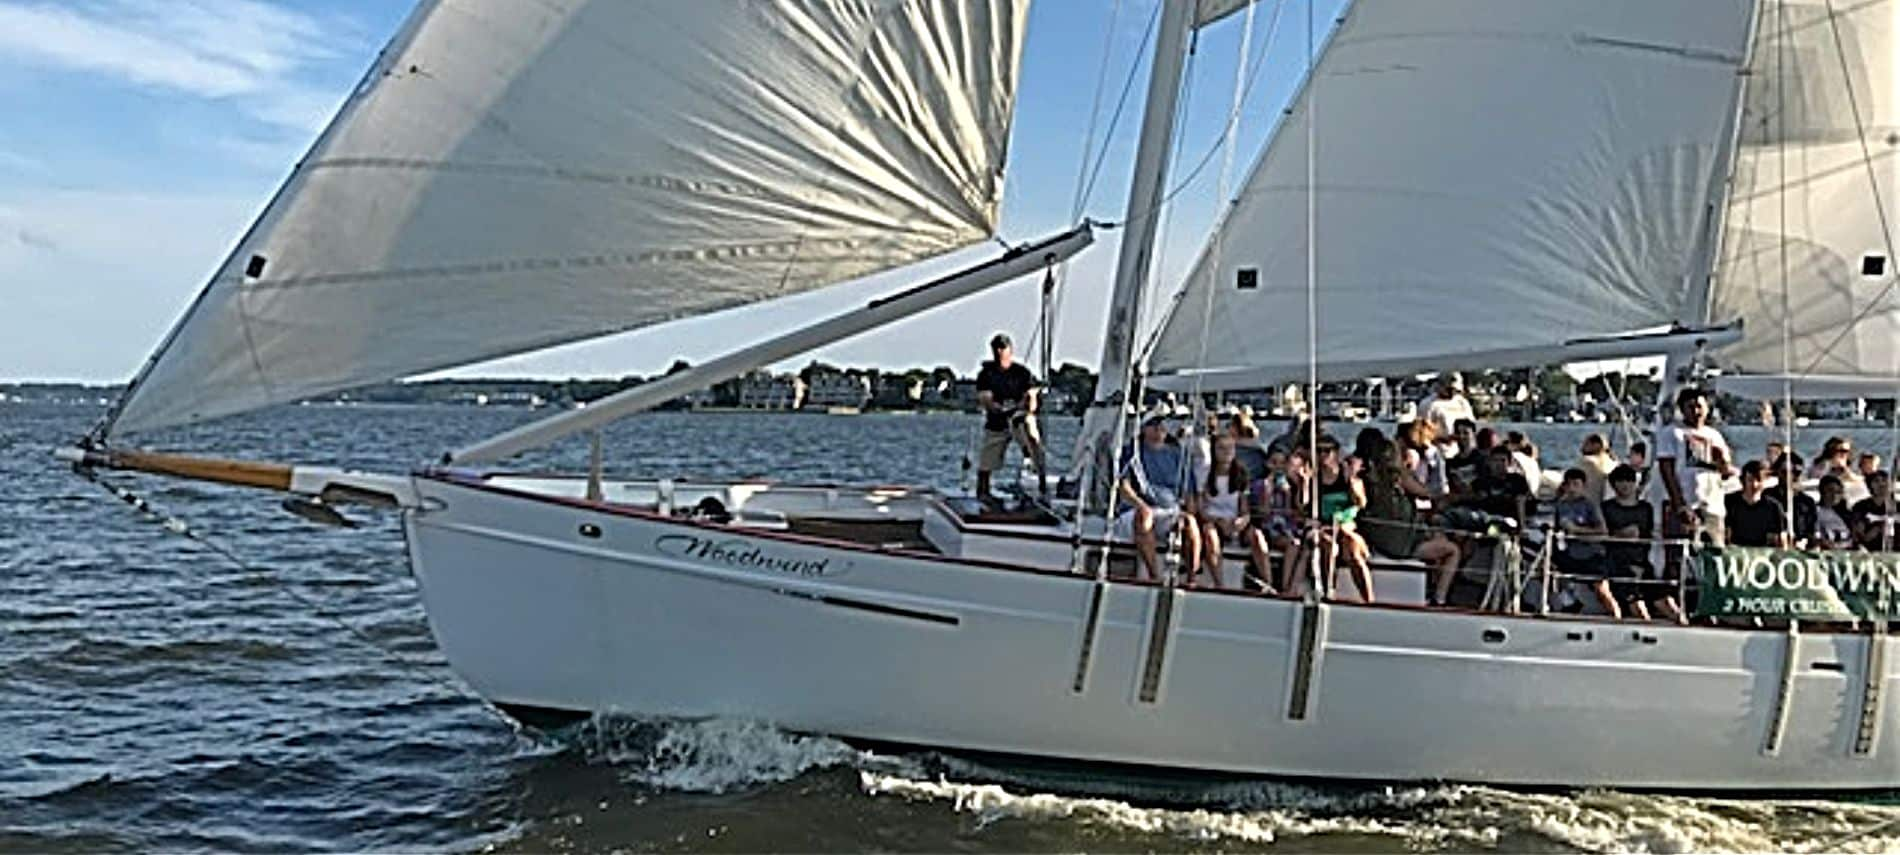 Group of people on large sail boat coating through the water